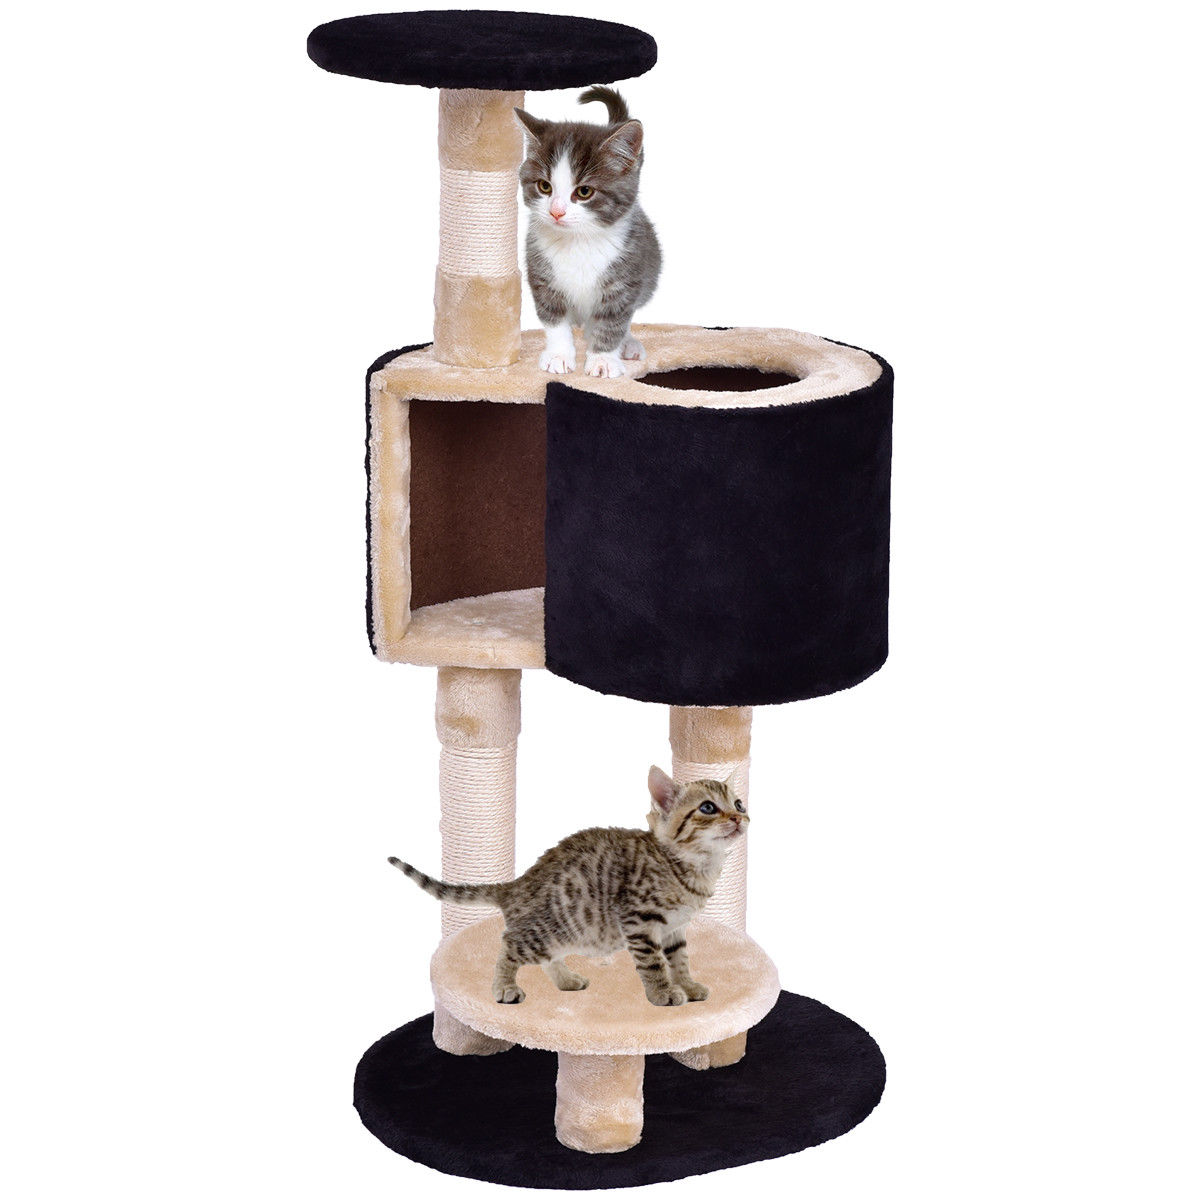 Gymax Cat Tree Kitten Activity Tower Condo Climber Pet House with Scratching Post